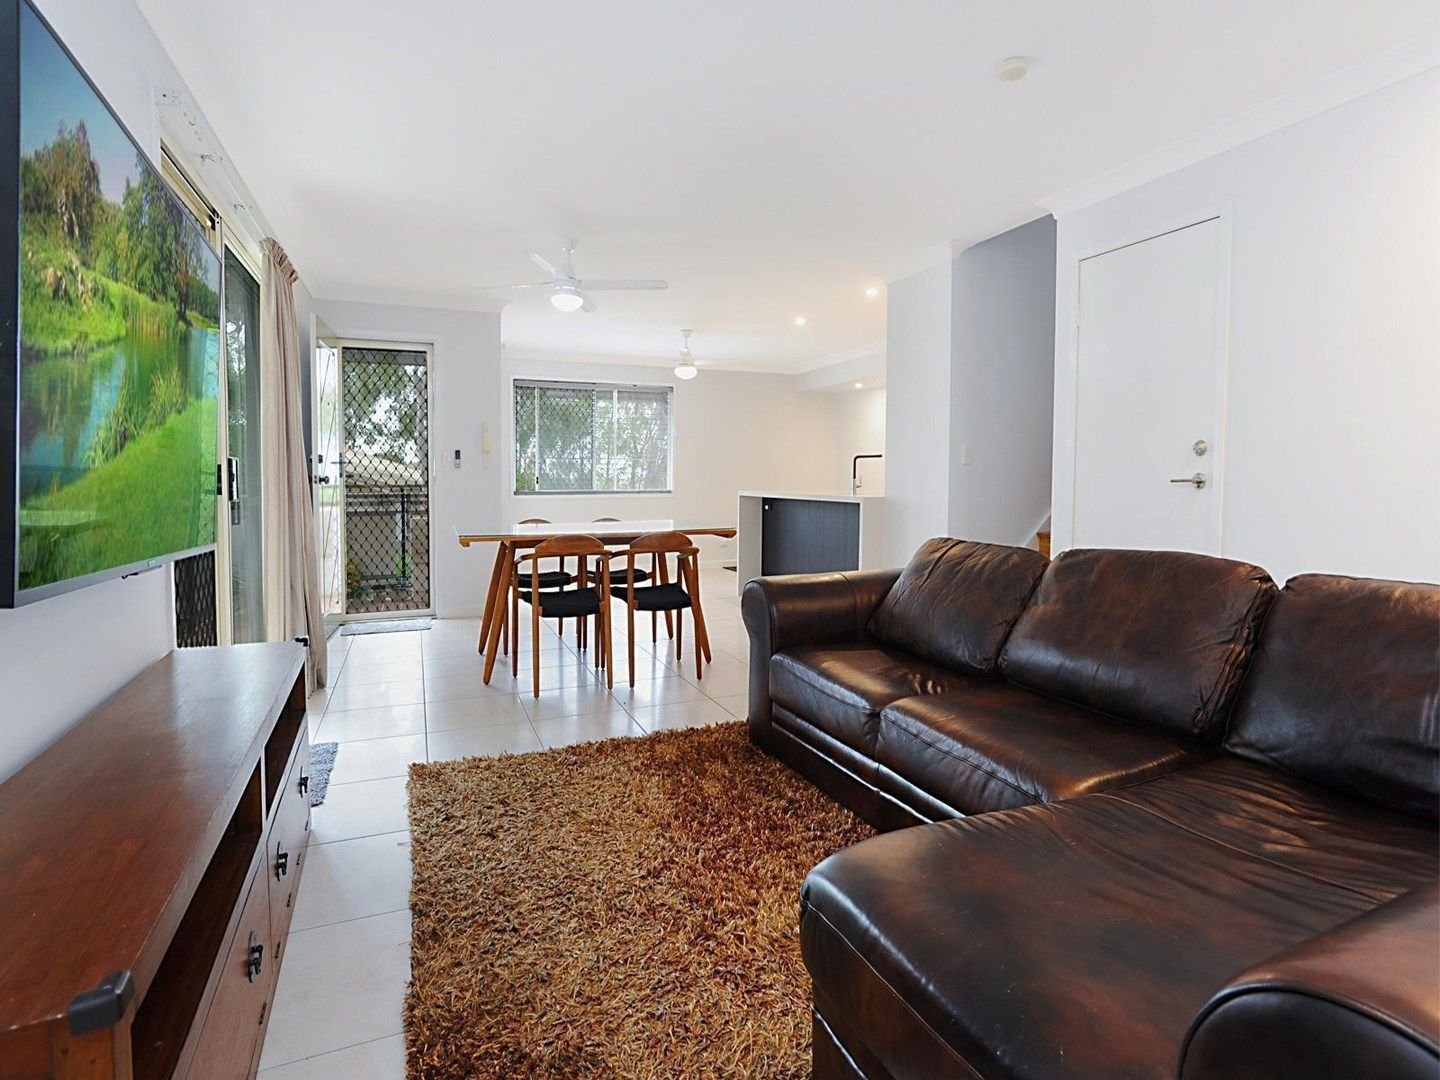 14/1 Glenquarie Place, The Gap QLD 4061, Image 0